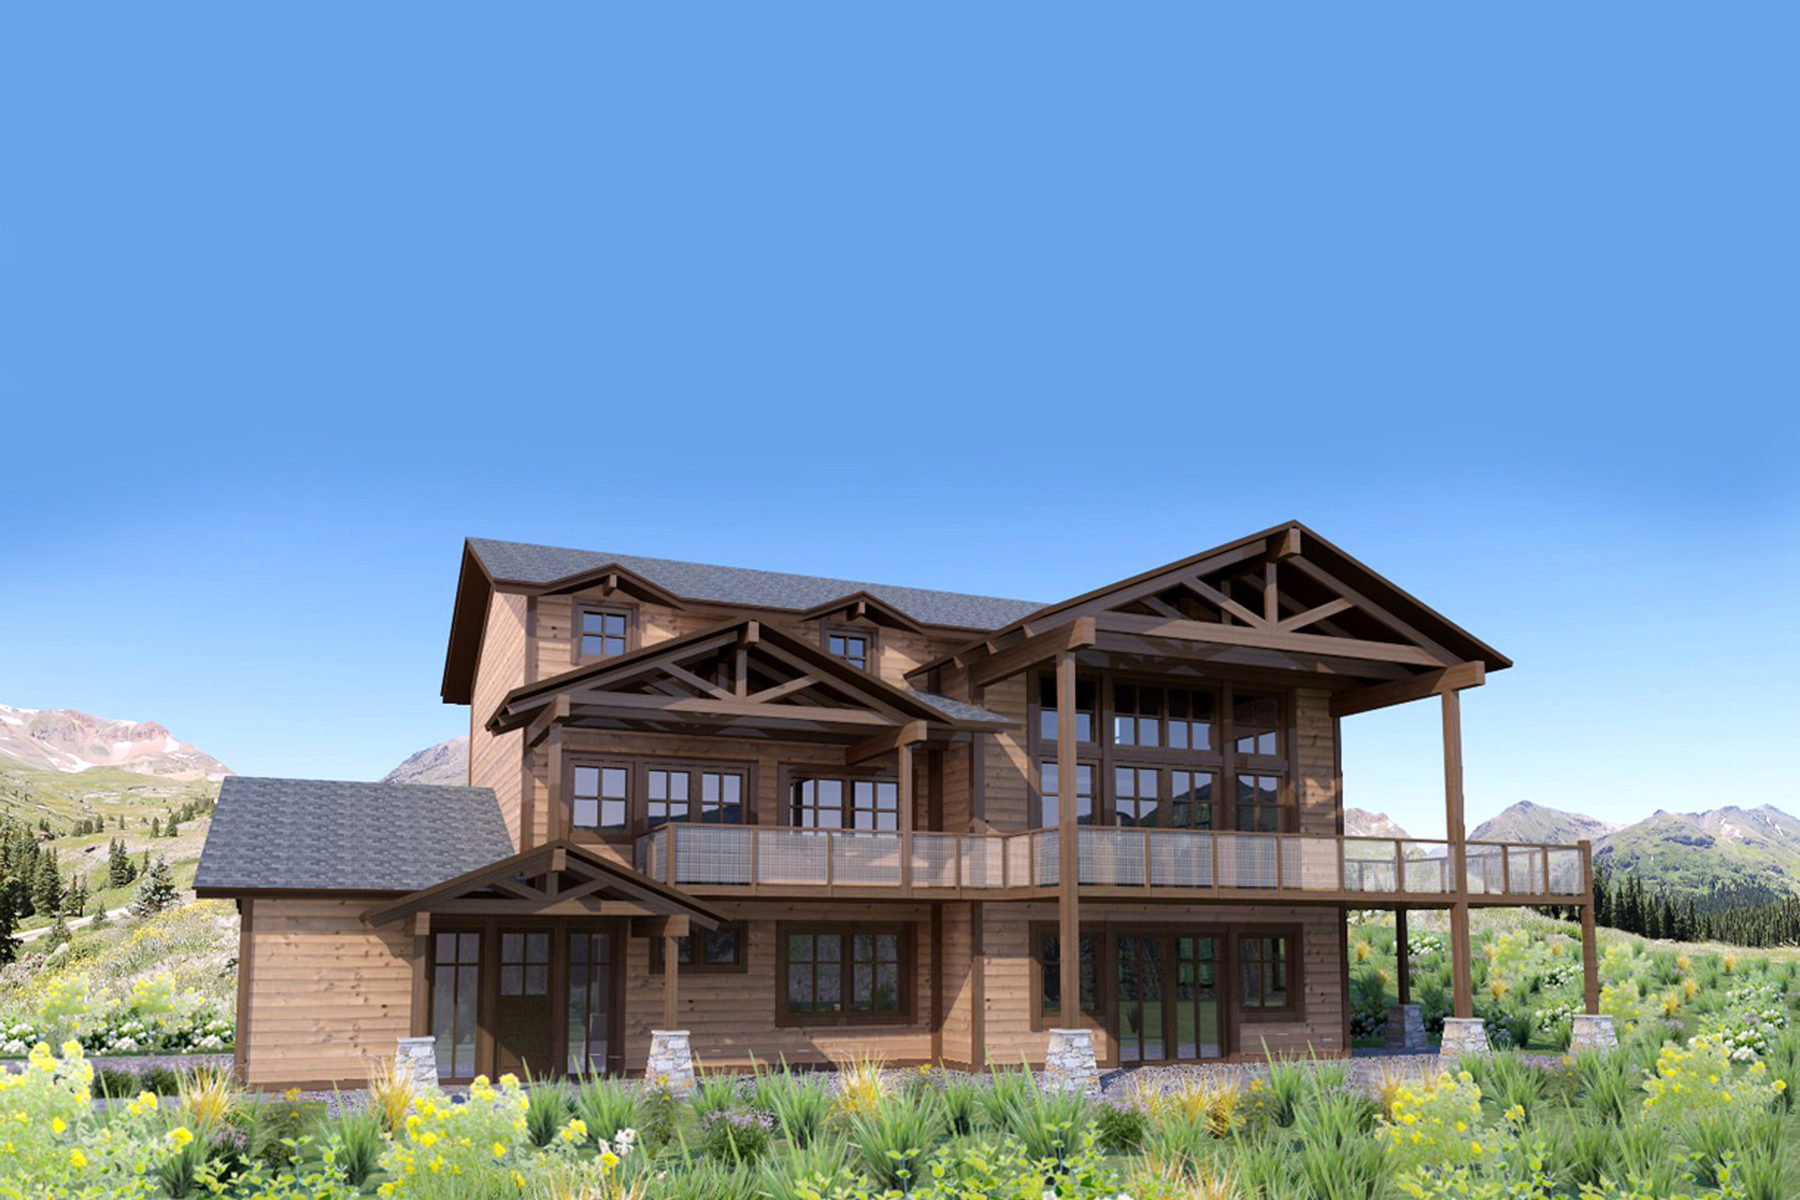 Single Family Home for Sale at New Construction in Timberlakes 1573 Westview Dr Heber City, Utah, 84032 United States